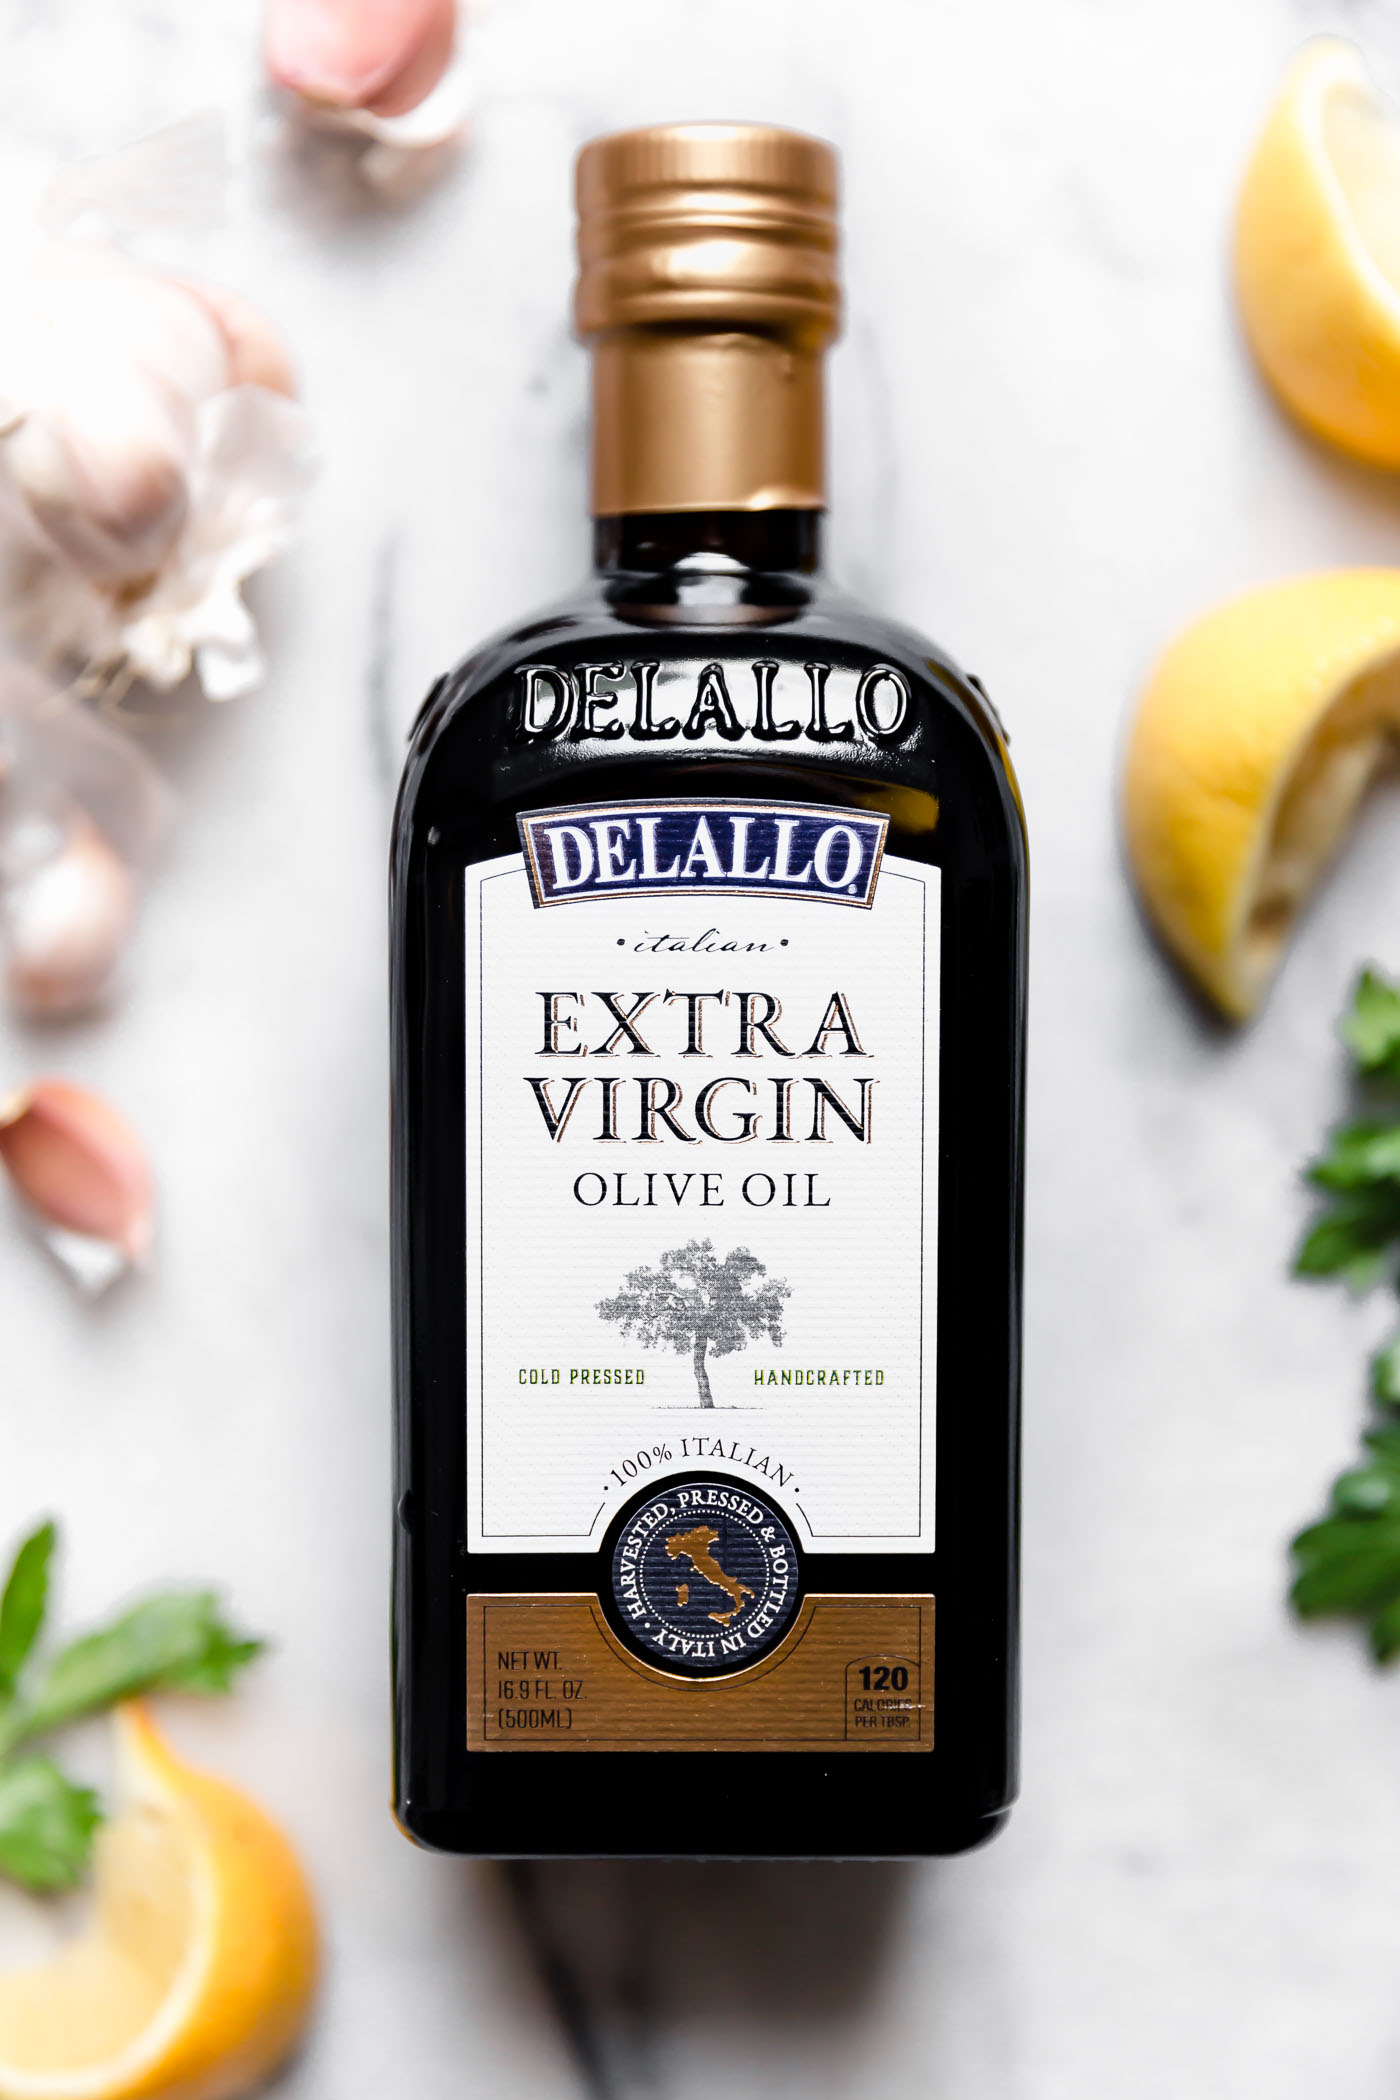 DeLallo olive oil bottle shown on a white marble surface surrounded by lemon wedges, whole garlic cloves & parsley.